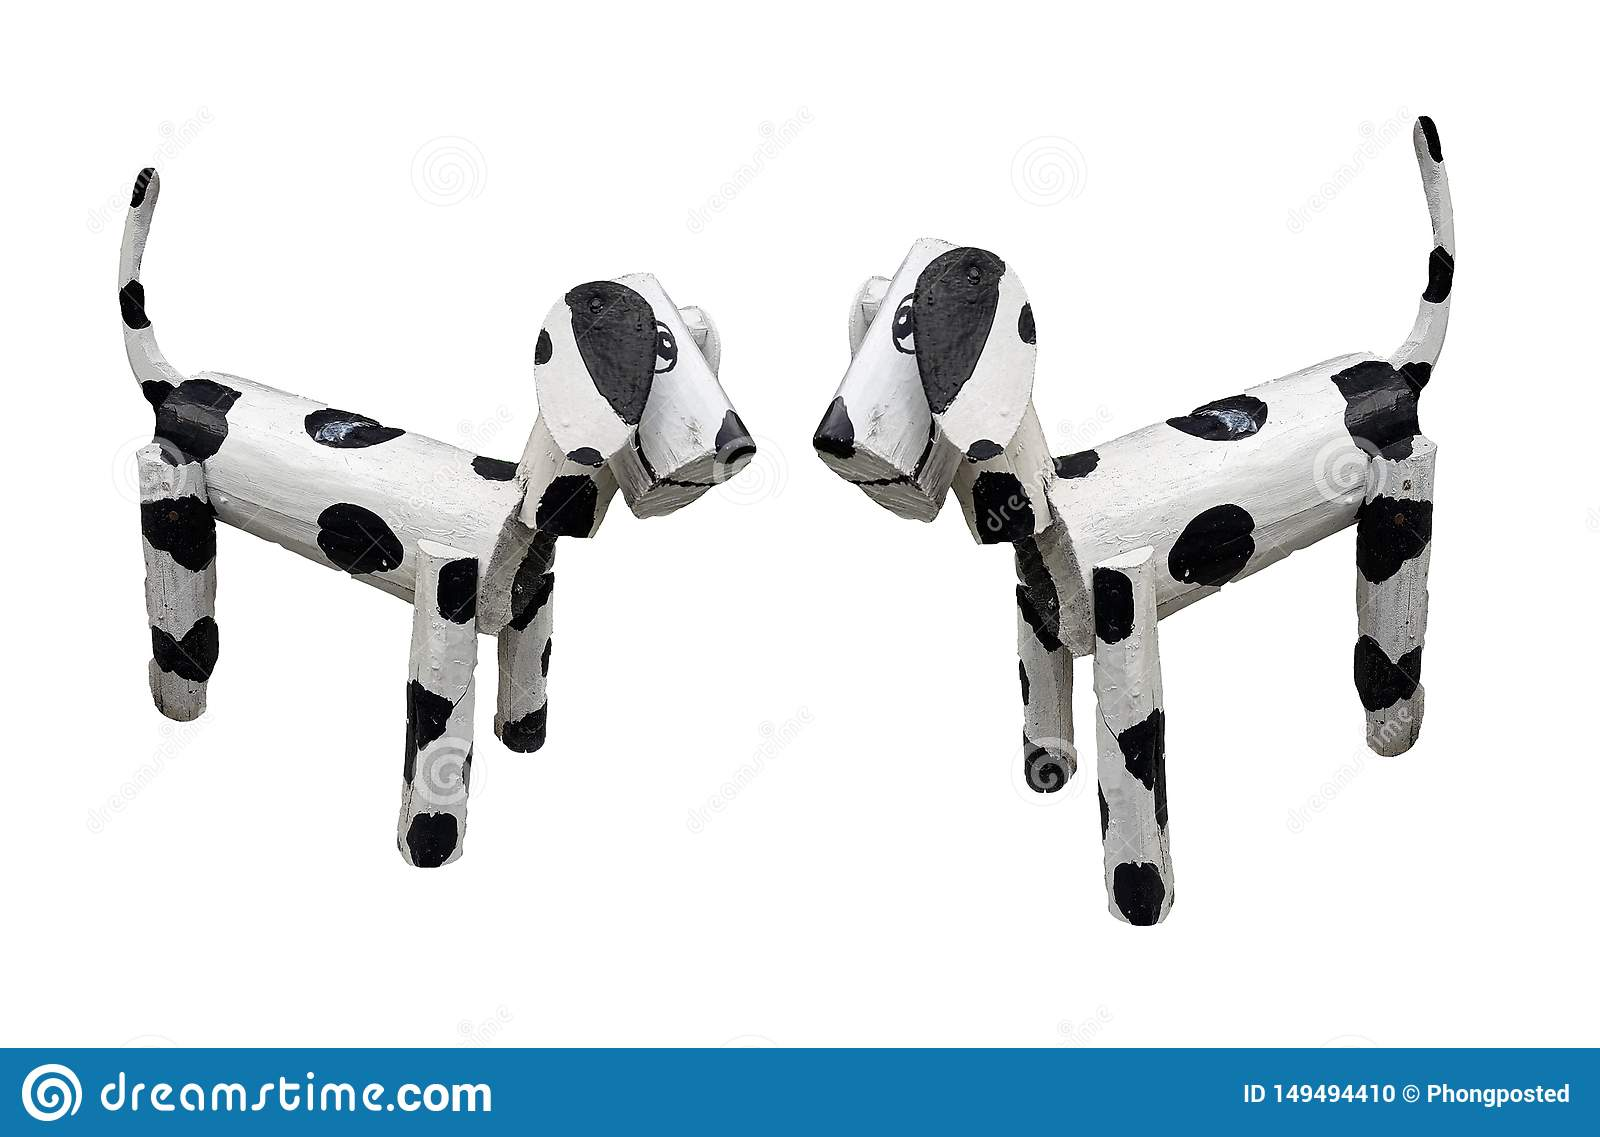 Two wooden dogs standing white mixed black colors isolated on white background